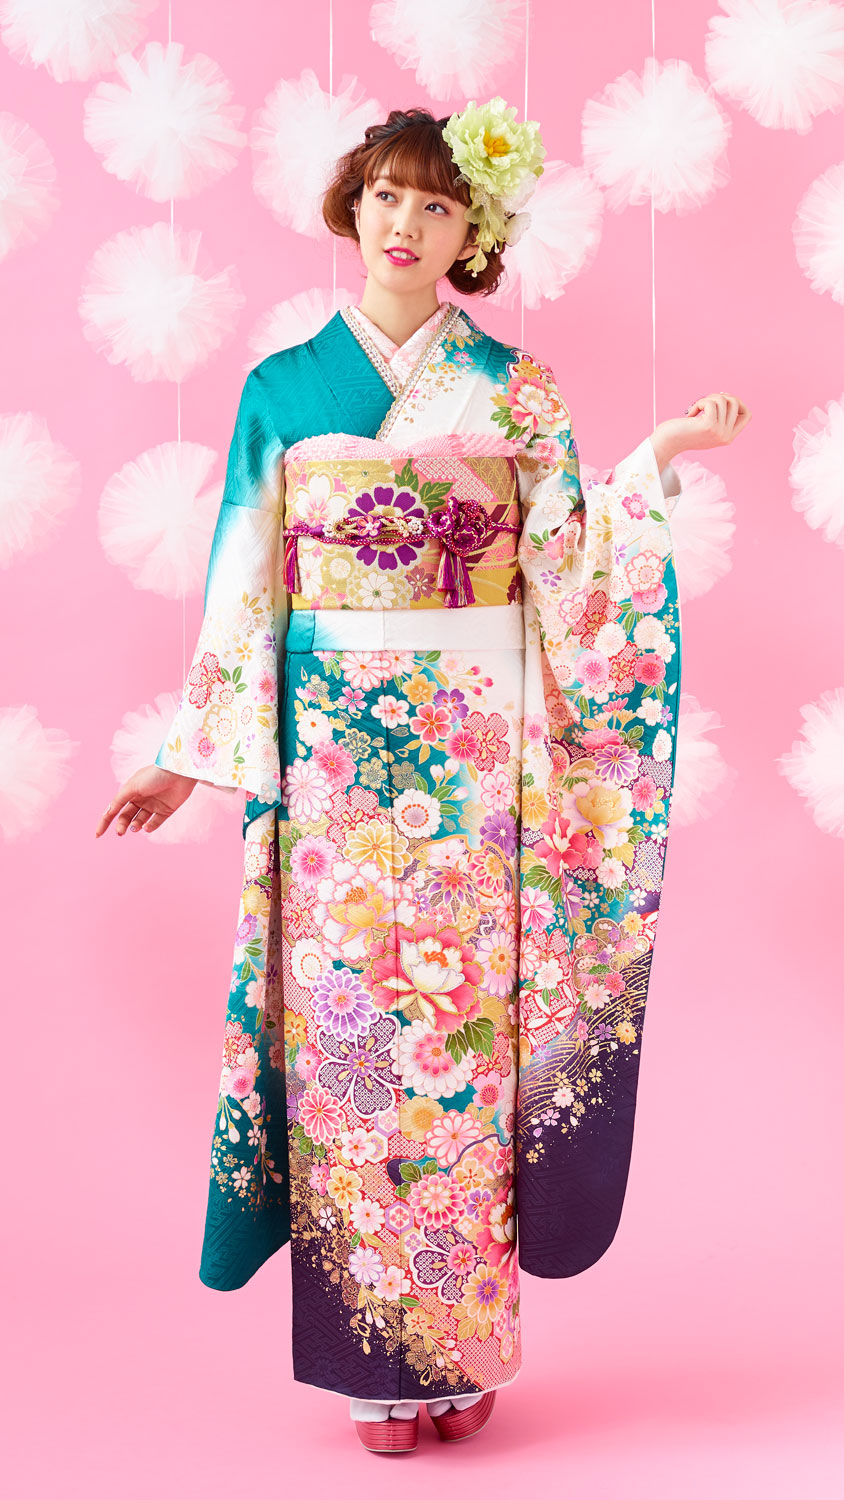 index_furisode_g002_thumb.jpg